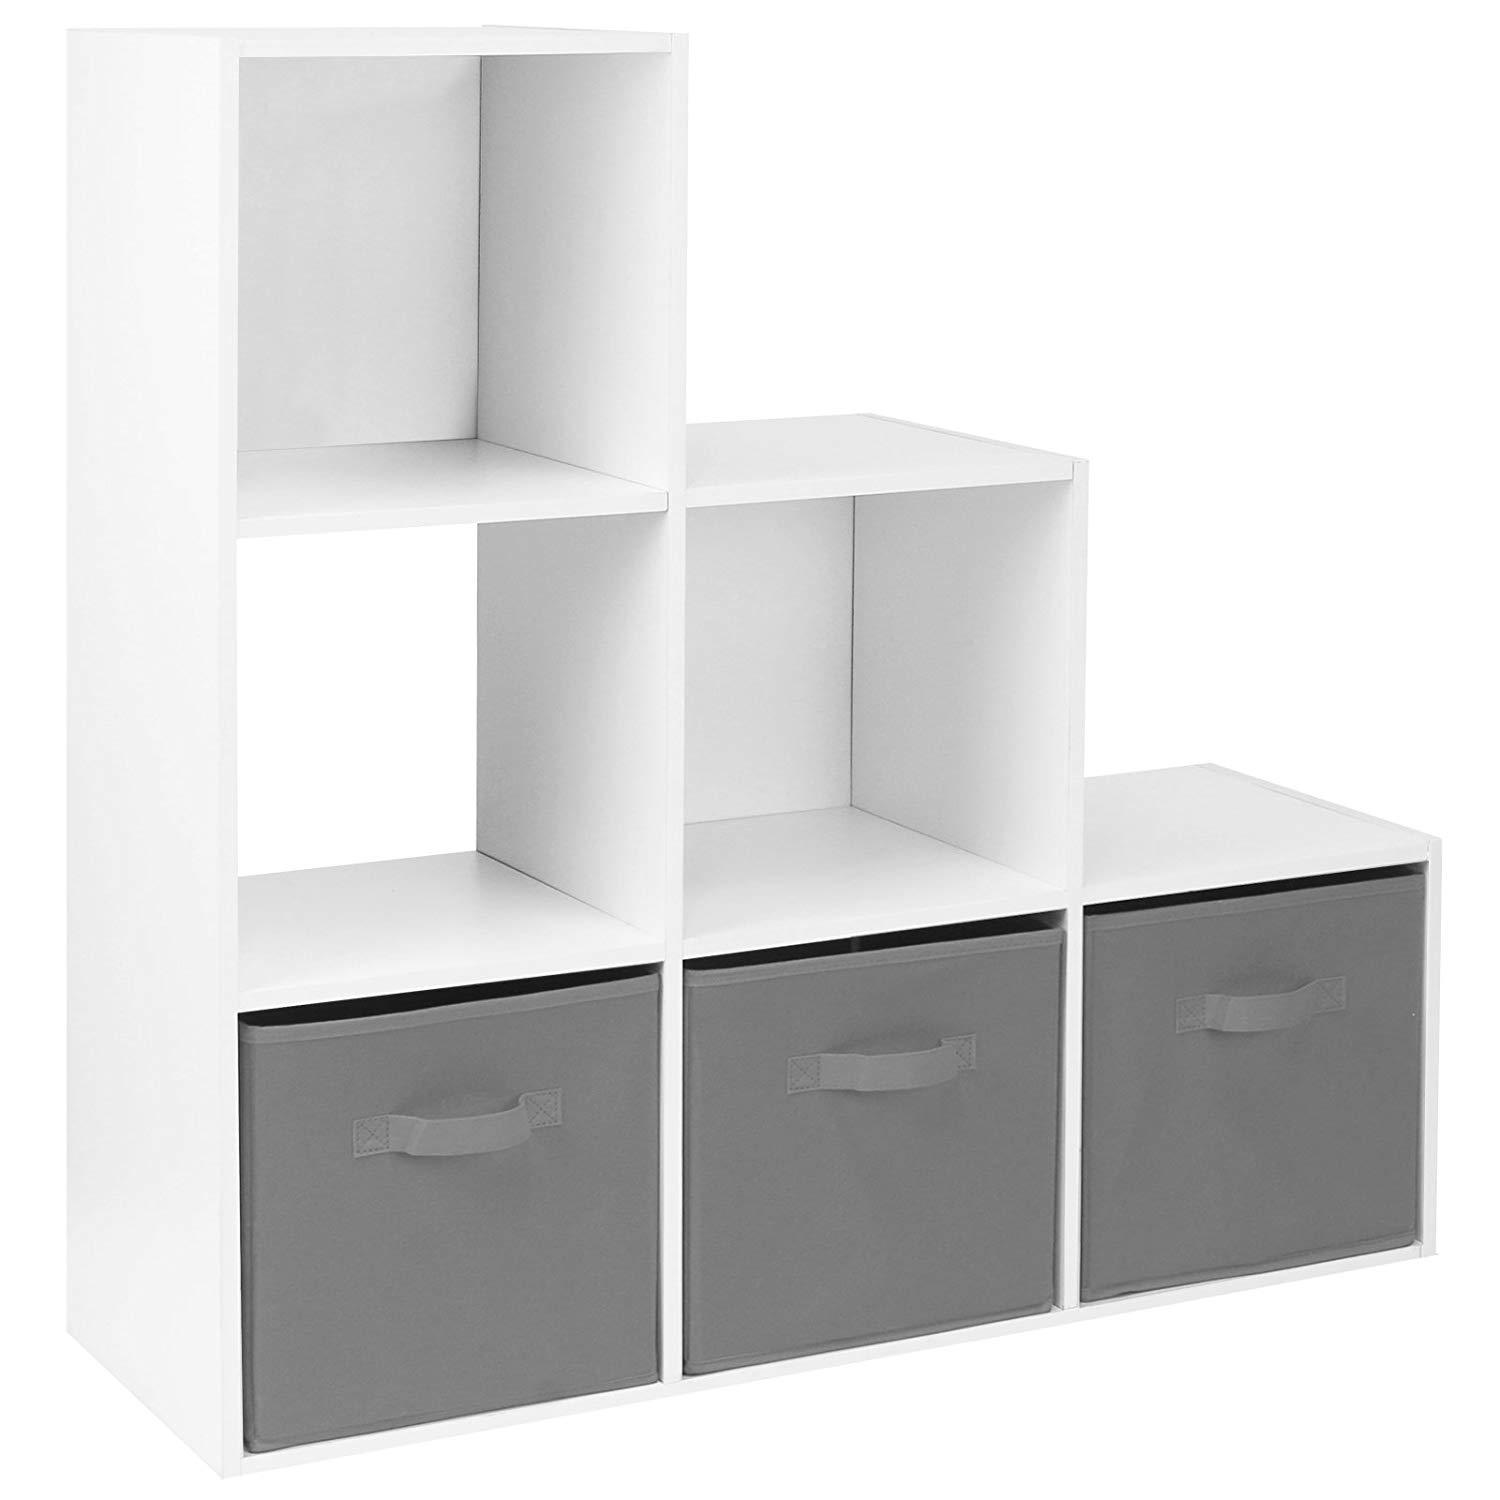 White 4 Tier Cube Bookcase Staircase Shelf Ladder Display Storage Shelving Unit